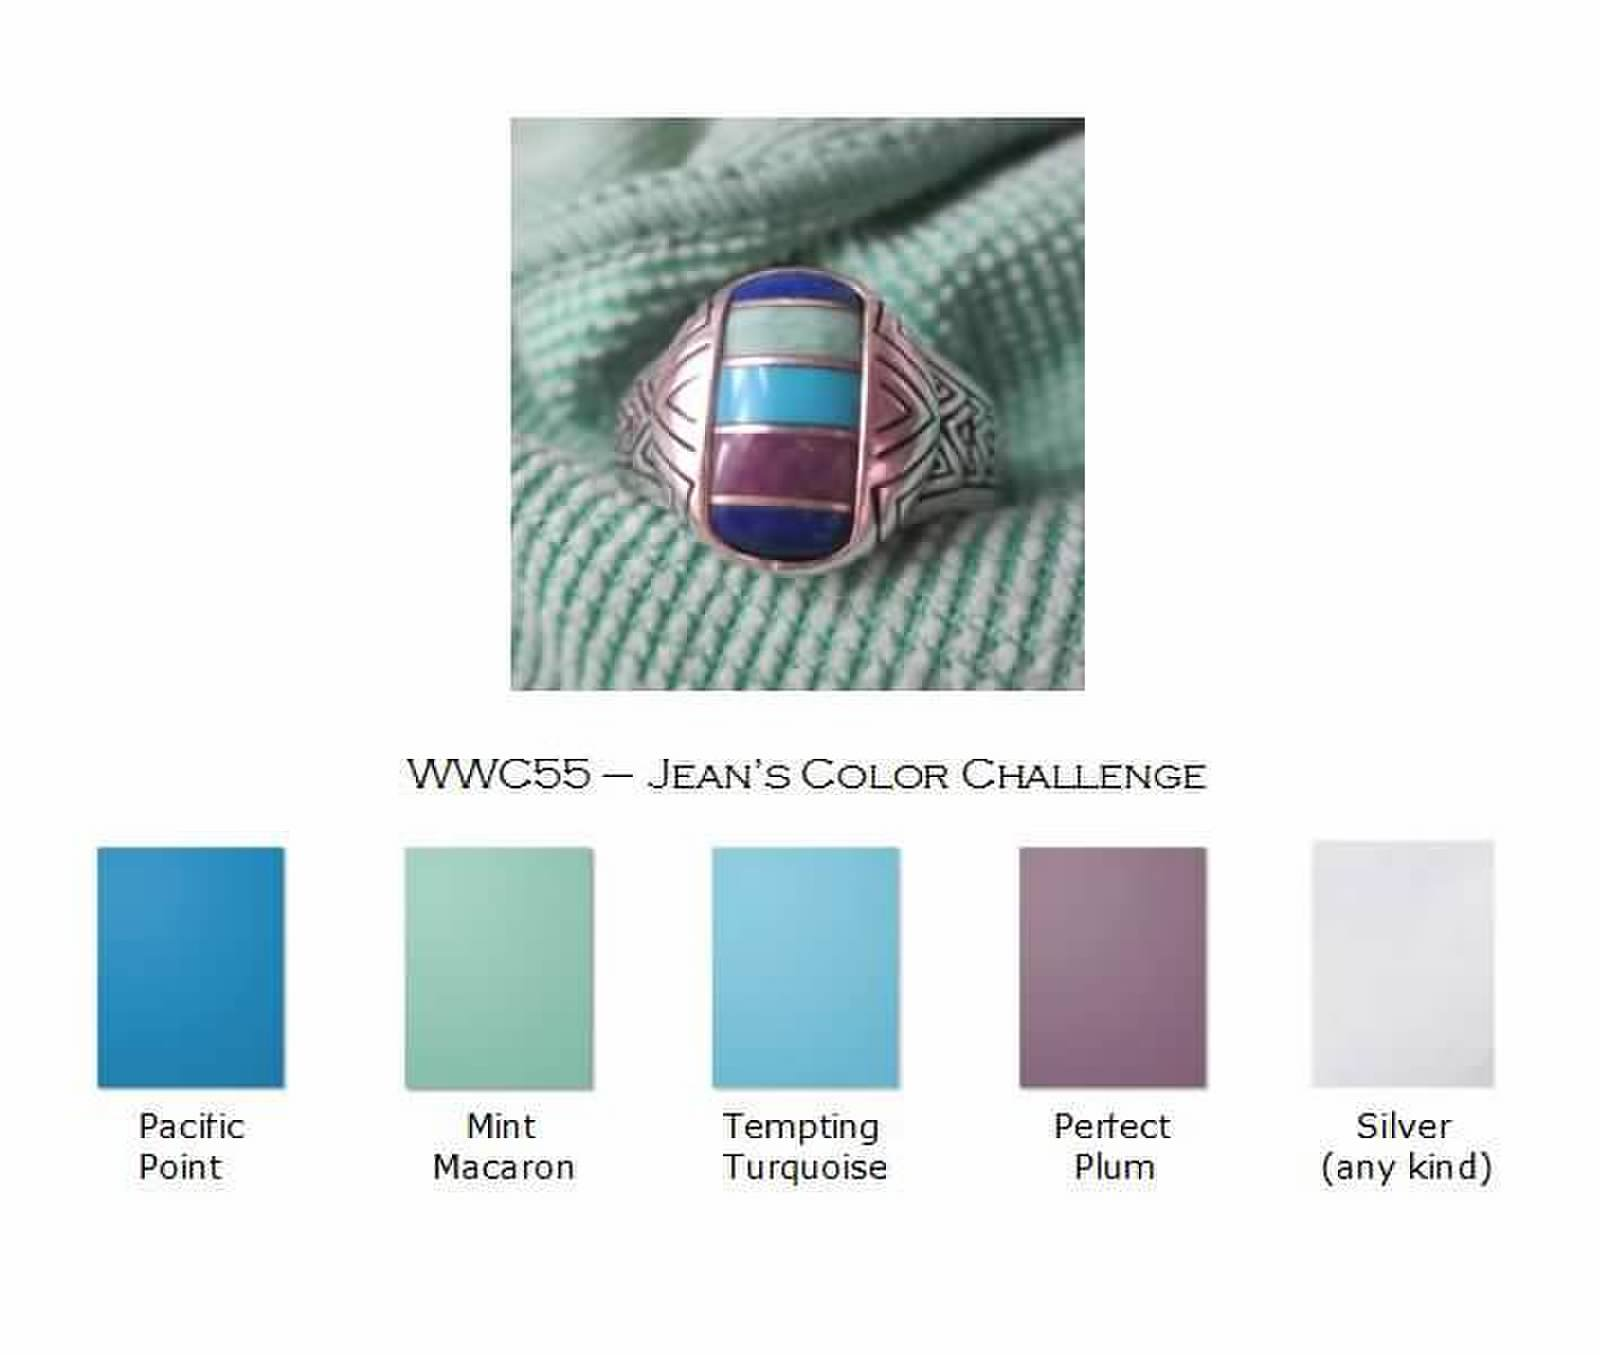 WWC55-Jean's Color Challenge